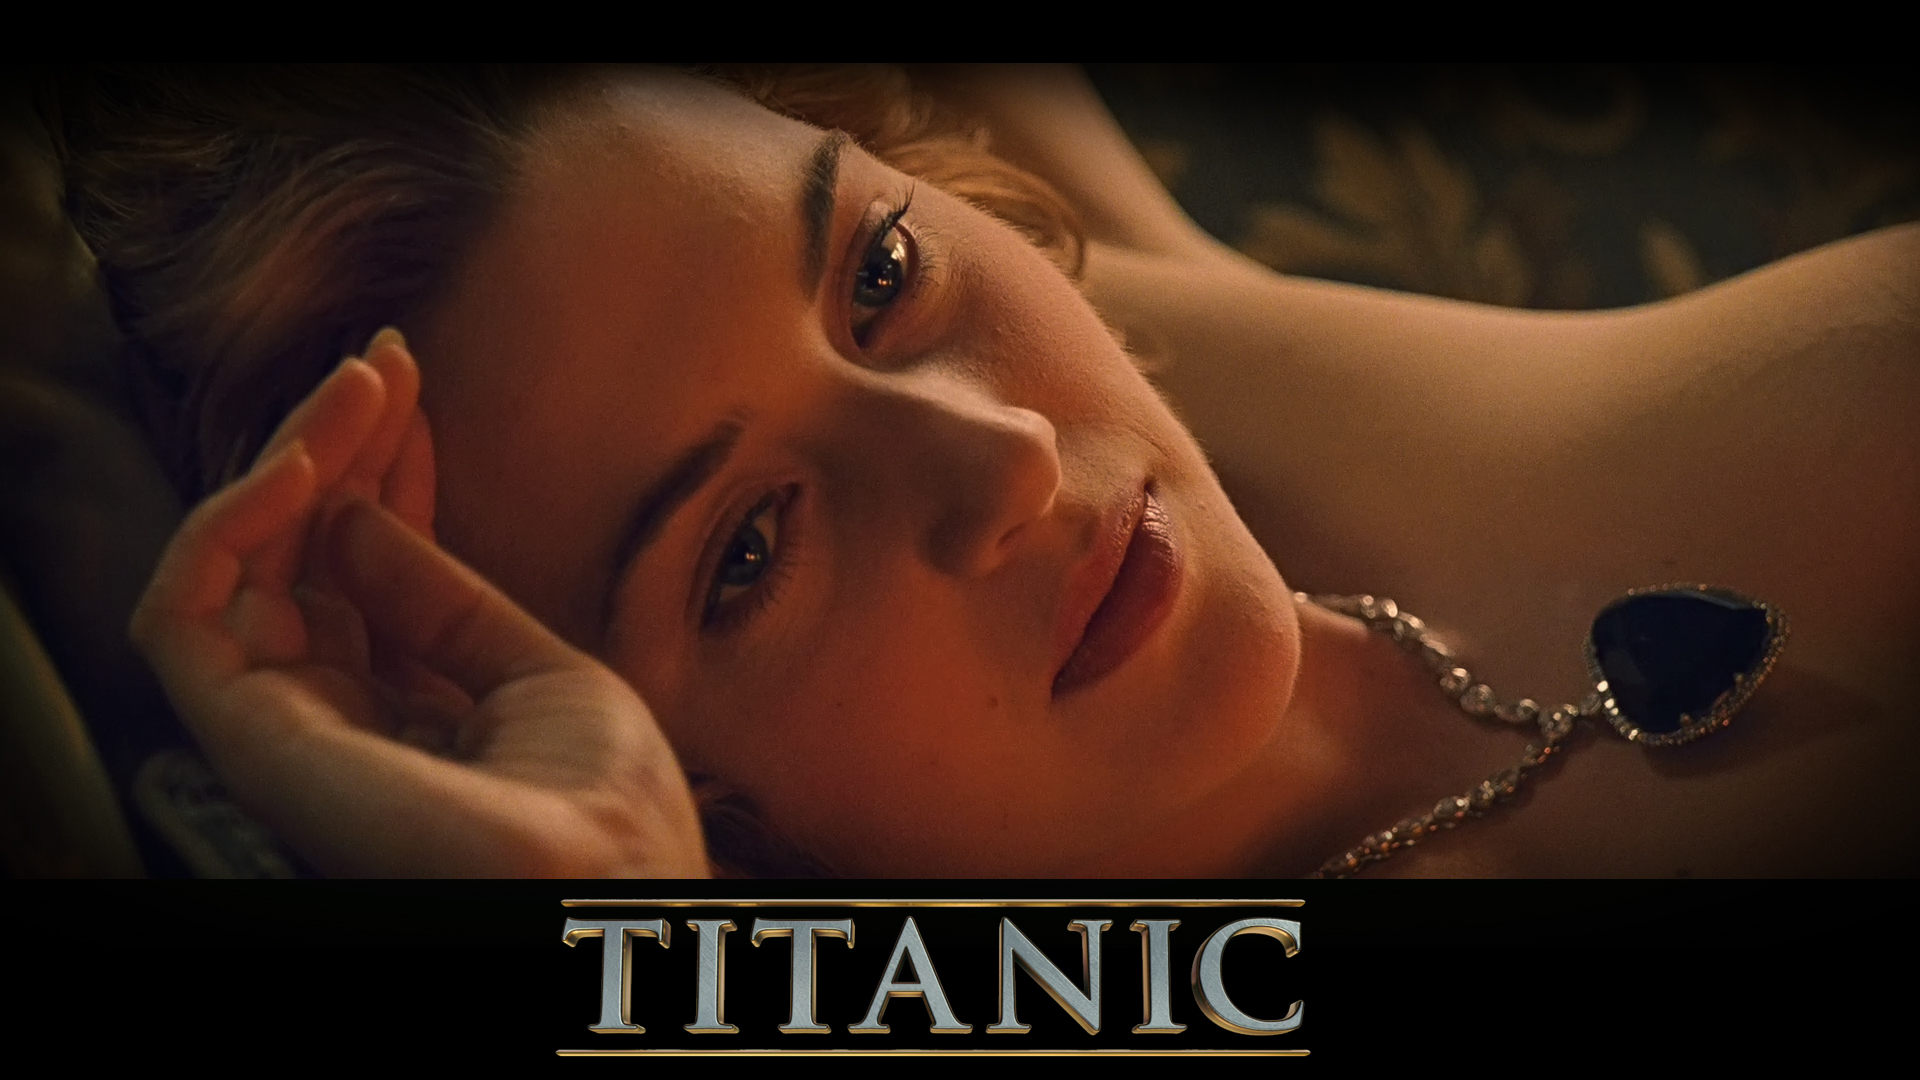 Kate Winslet in Titanic Wallpapers | HD Wallpapers